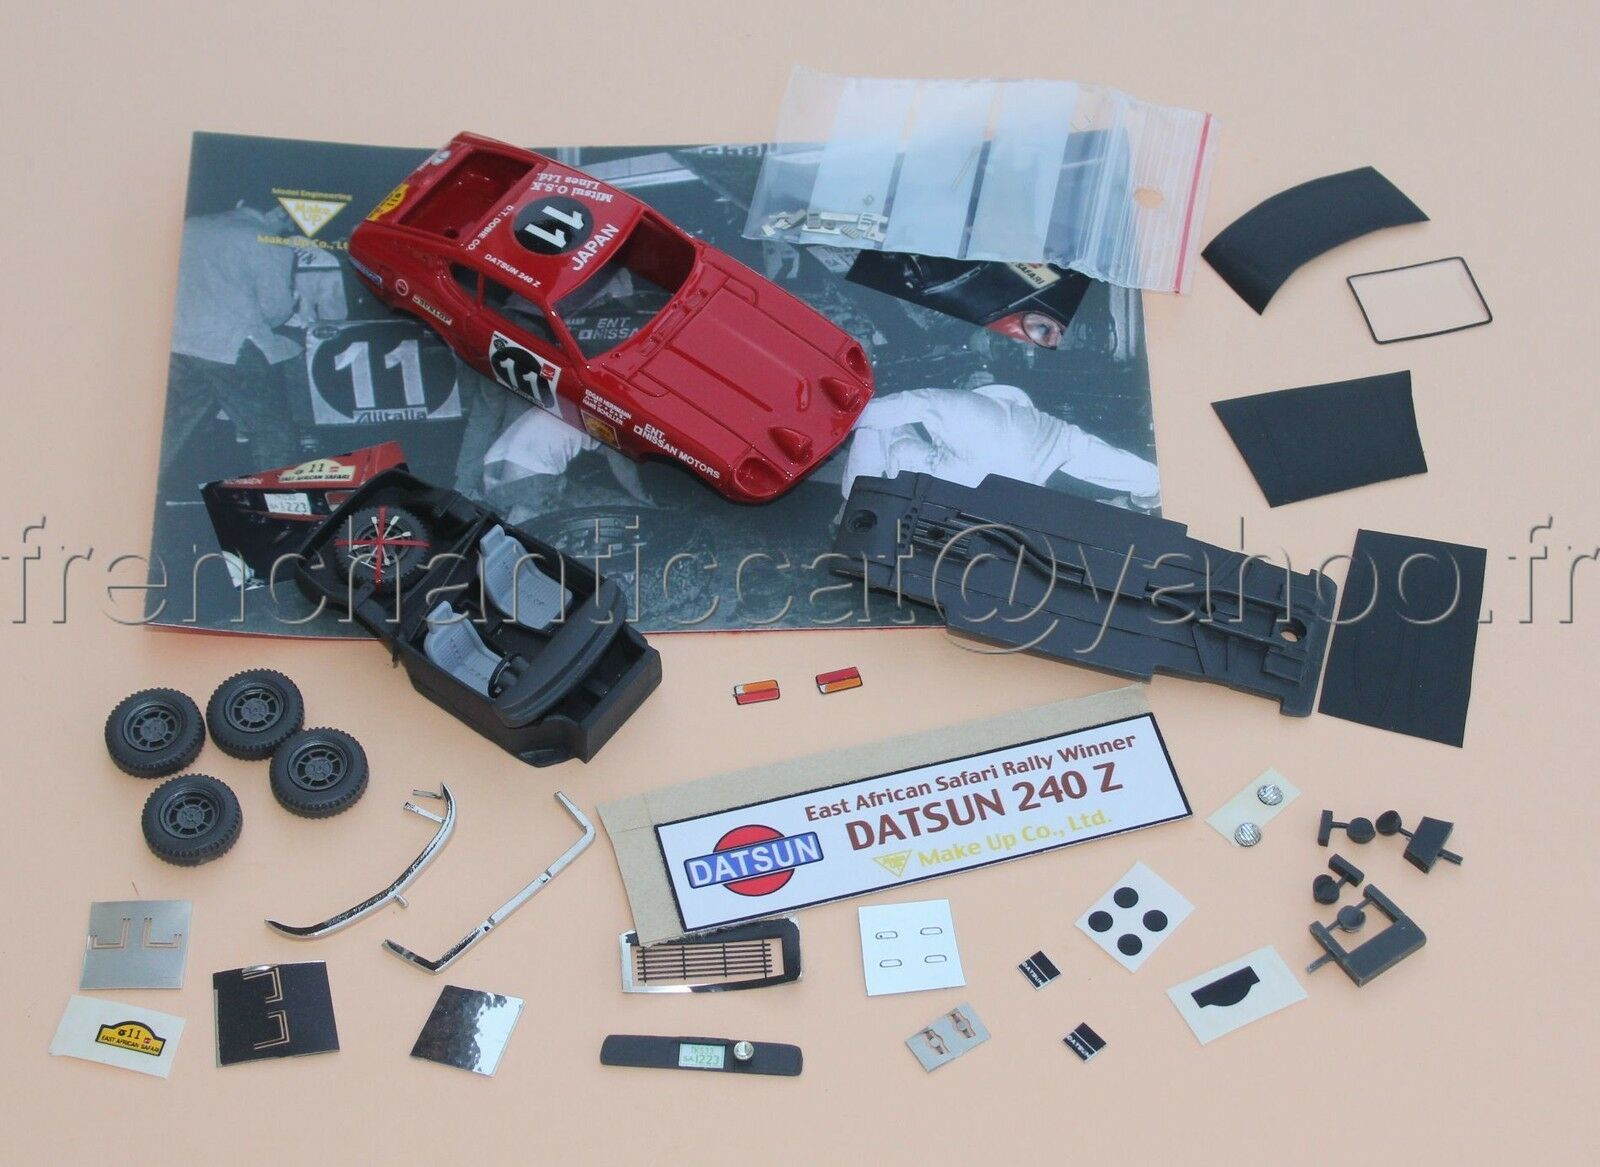 WH Voiture DATSUN 240 Z Safari 1971 1 43 Heco Heco Heco miniatures Provence moulage resine ee1043